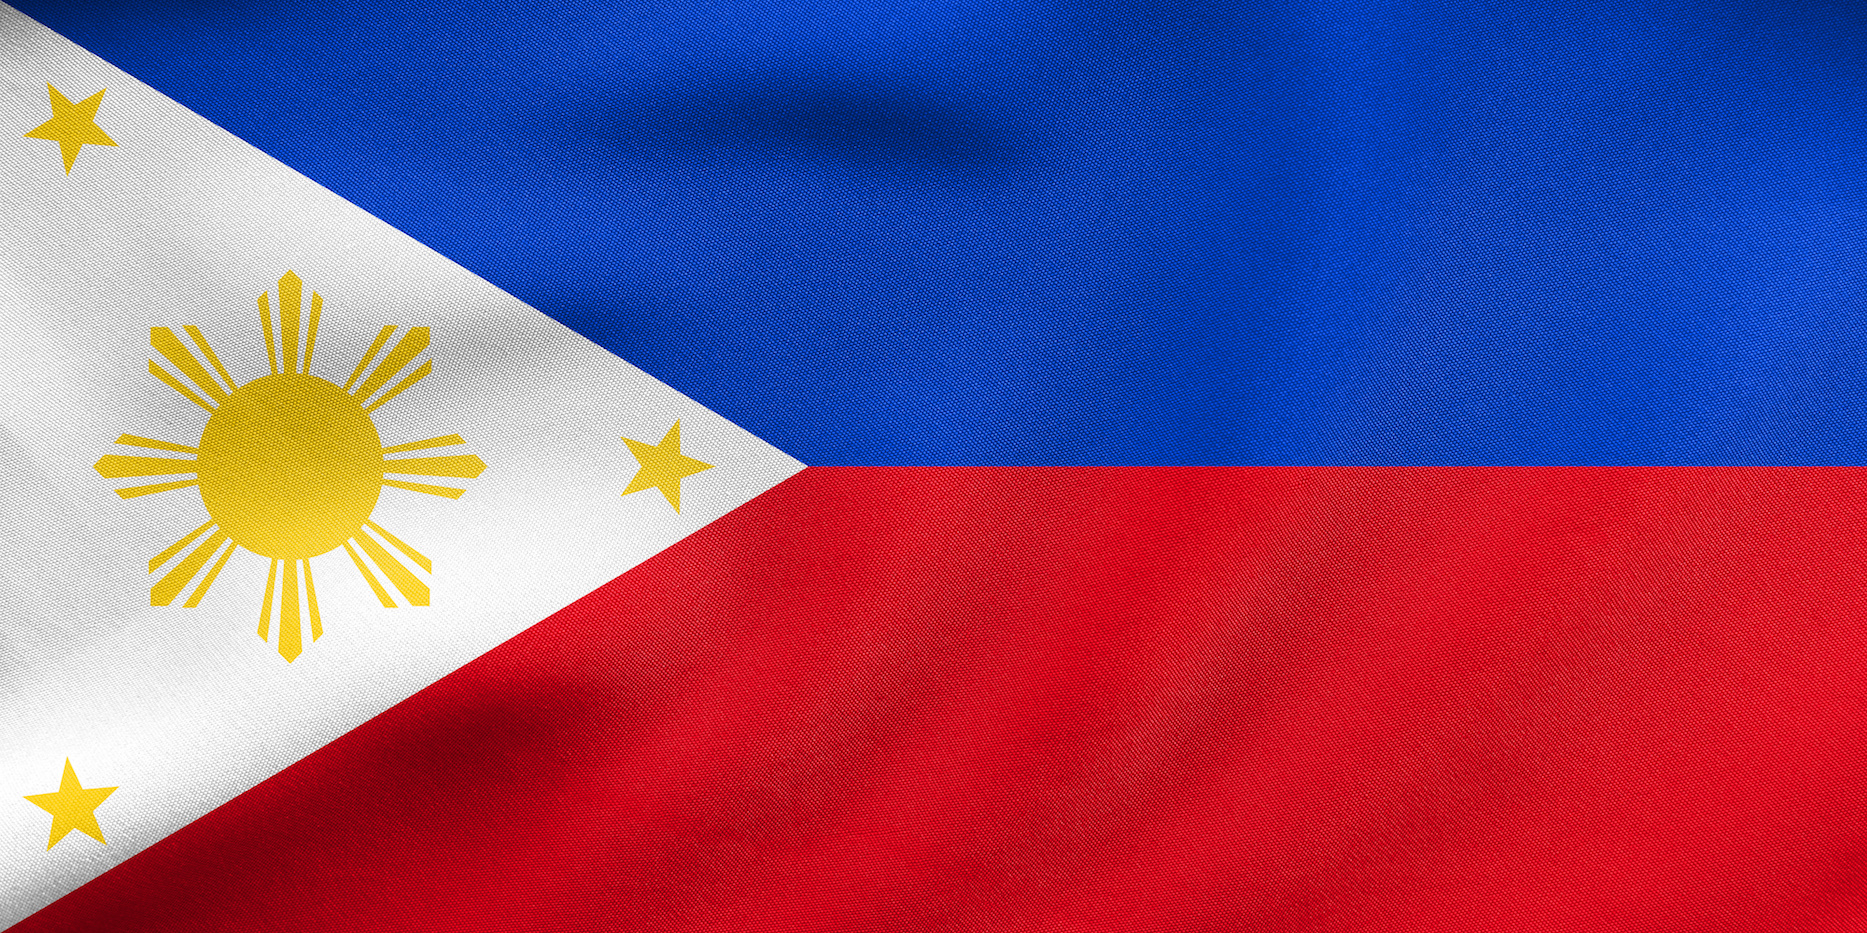 Philippine national official flag. Patriotic symbol, banner, element, background. Correct size, colors. Flag of the Philippines waving in the wind, real detailed fabric texture. 3D illustration